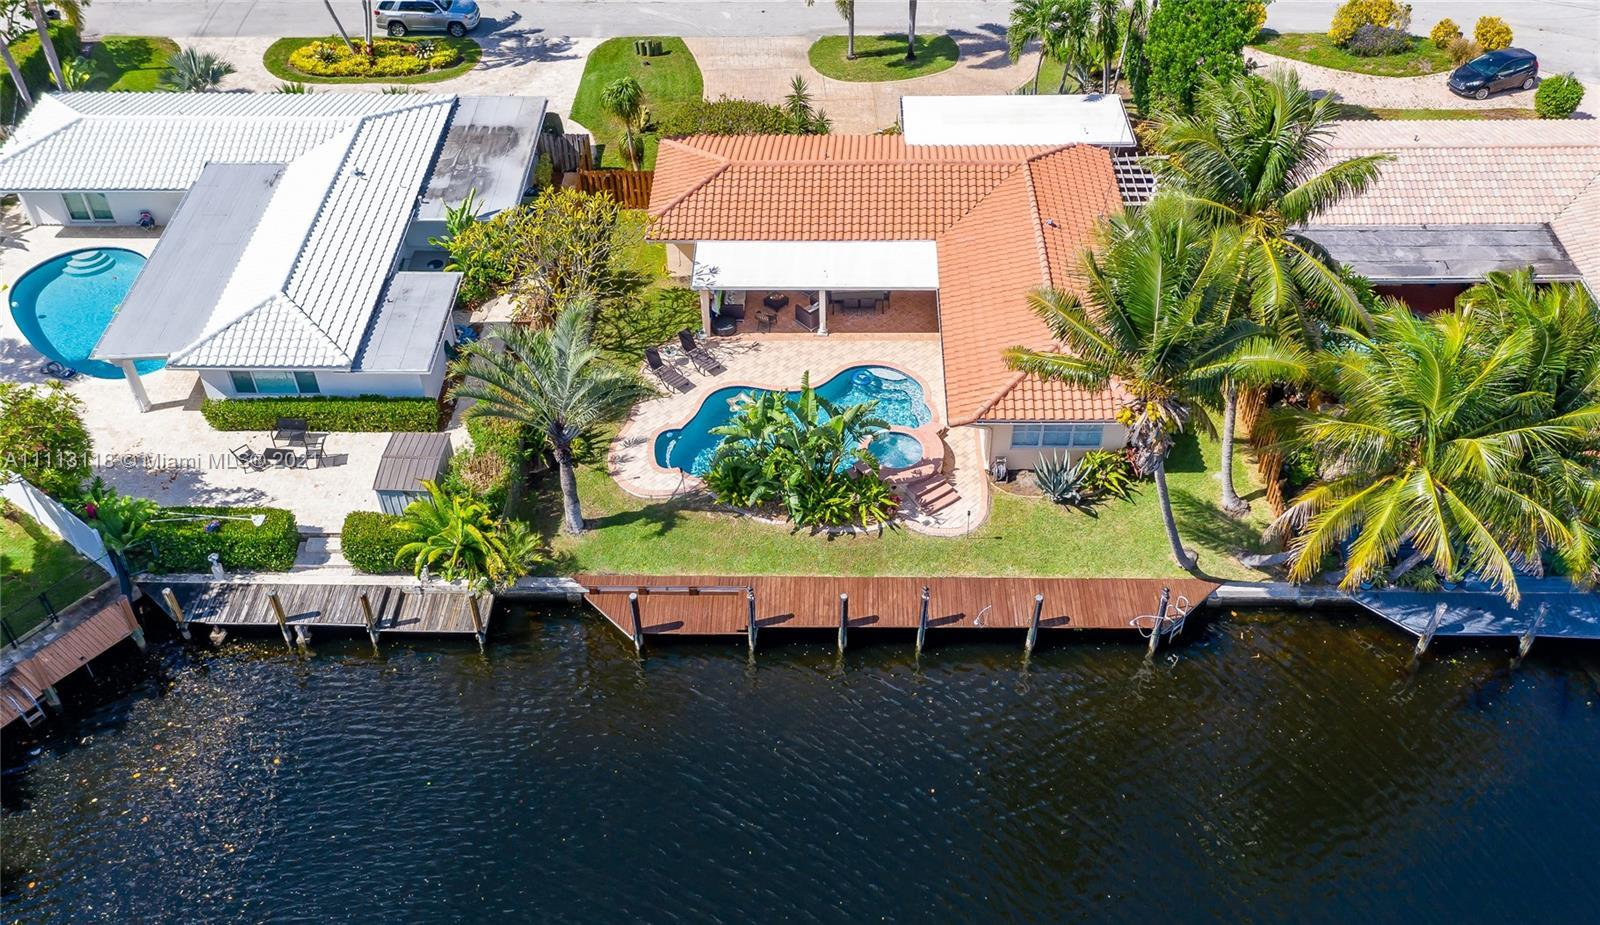 Stunning Waterfront home 3BR/2BA with Ocean access. Private 75'dock with davits, electricity and lig